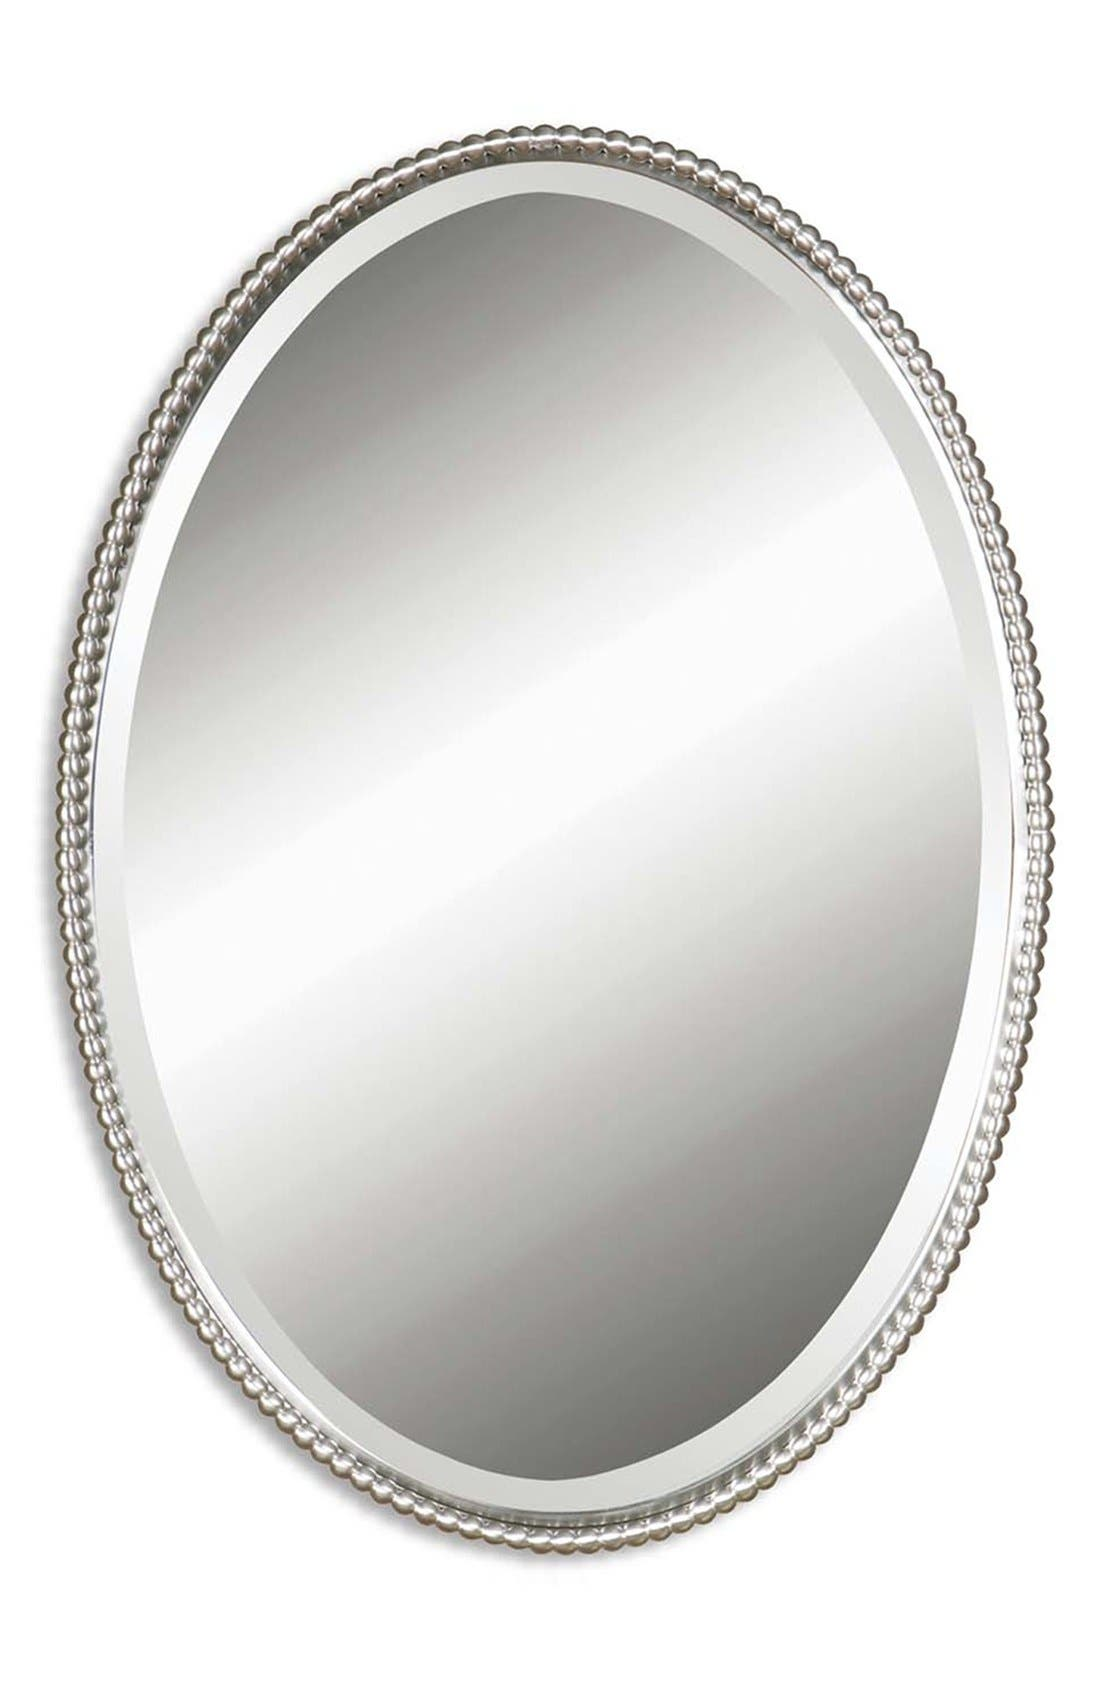 'Sherise' Oval Mirror,                         Main,                         color, Brushed Nickel